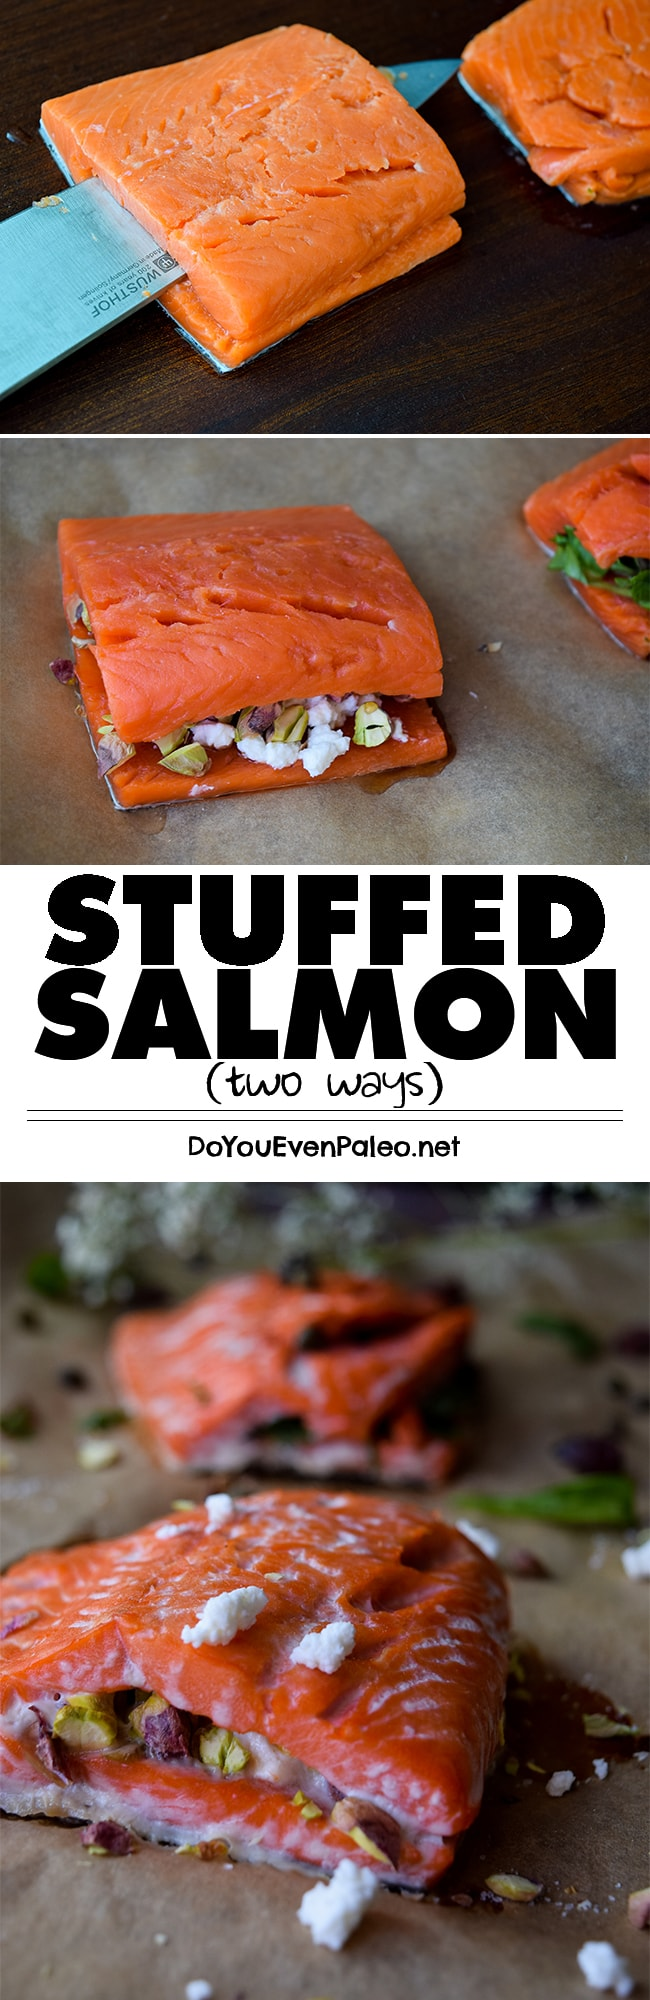 Stuffed Salmon - the possibilities are endless! Gluten free with paleo options. | DoYouEvenPaleo.net